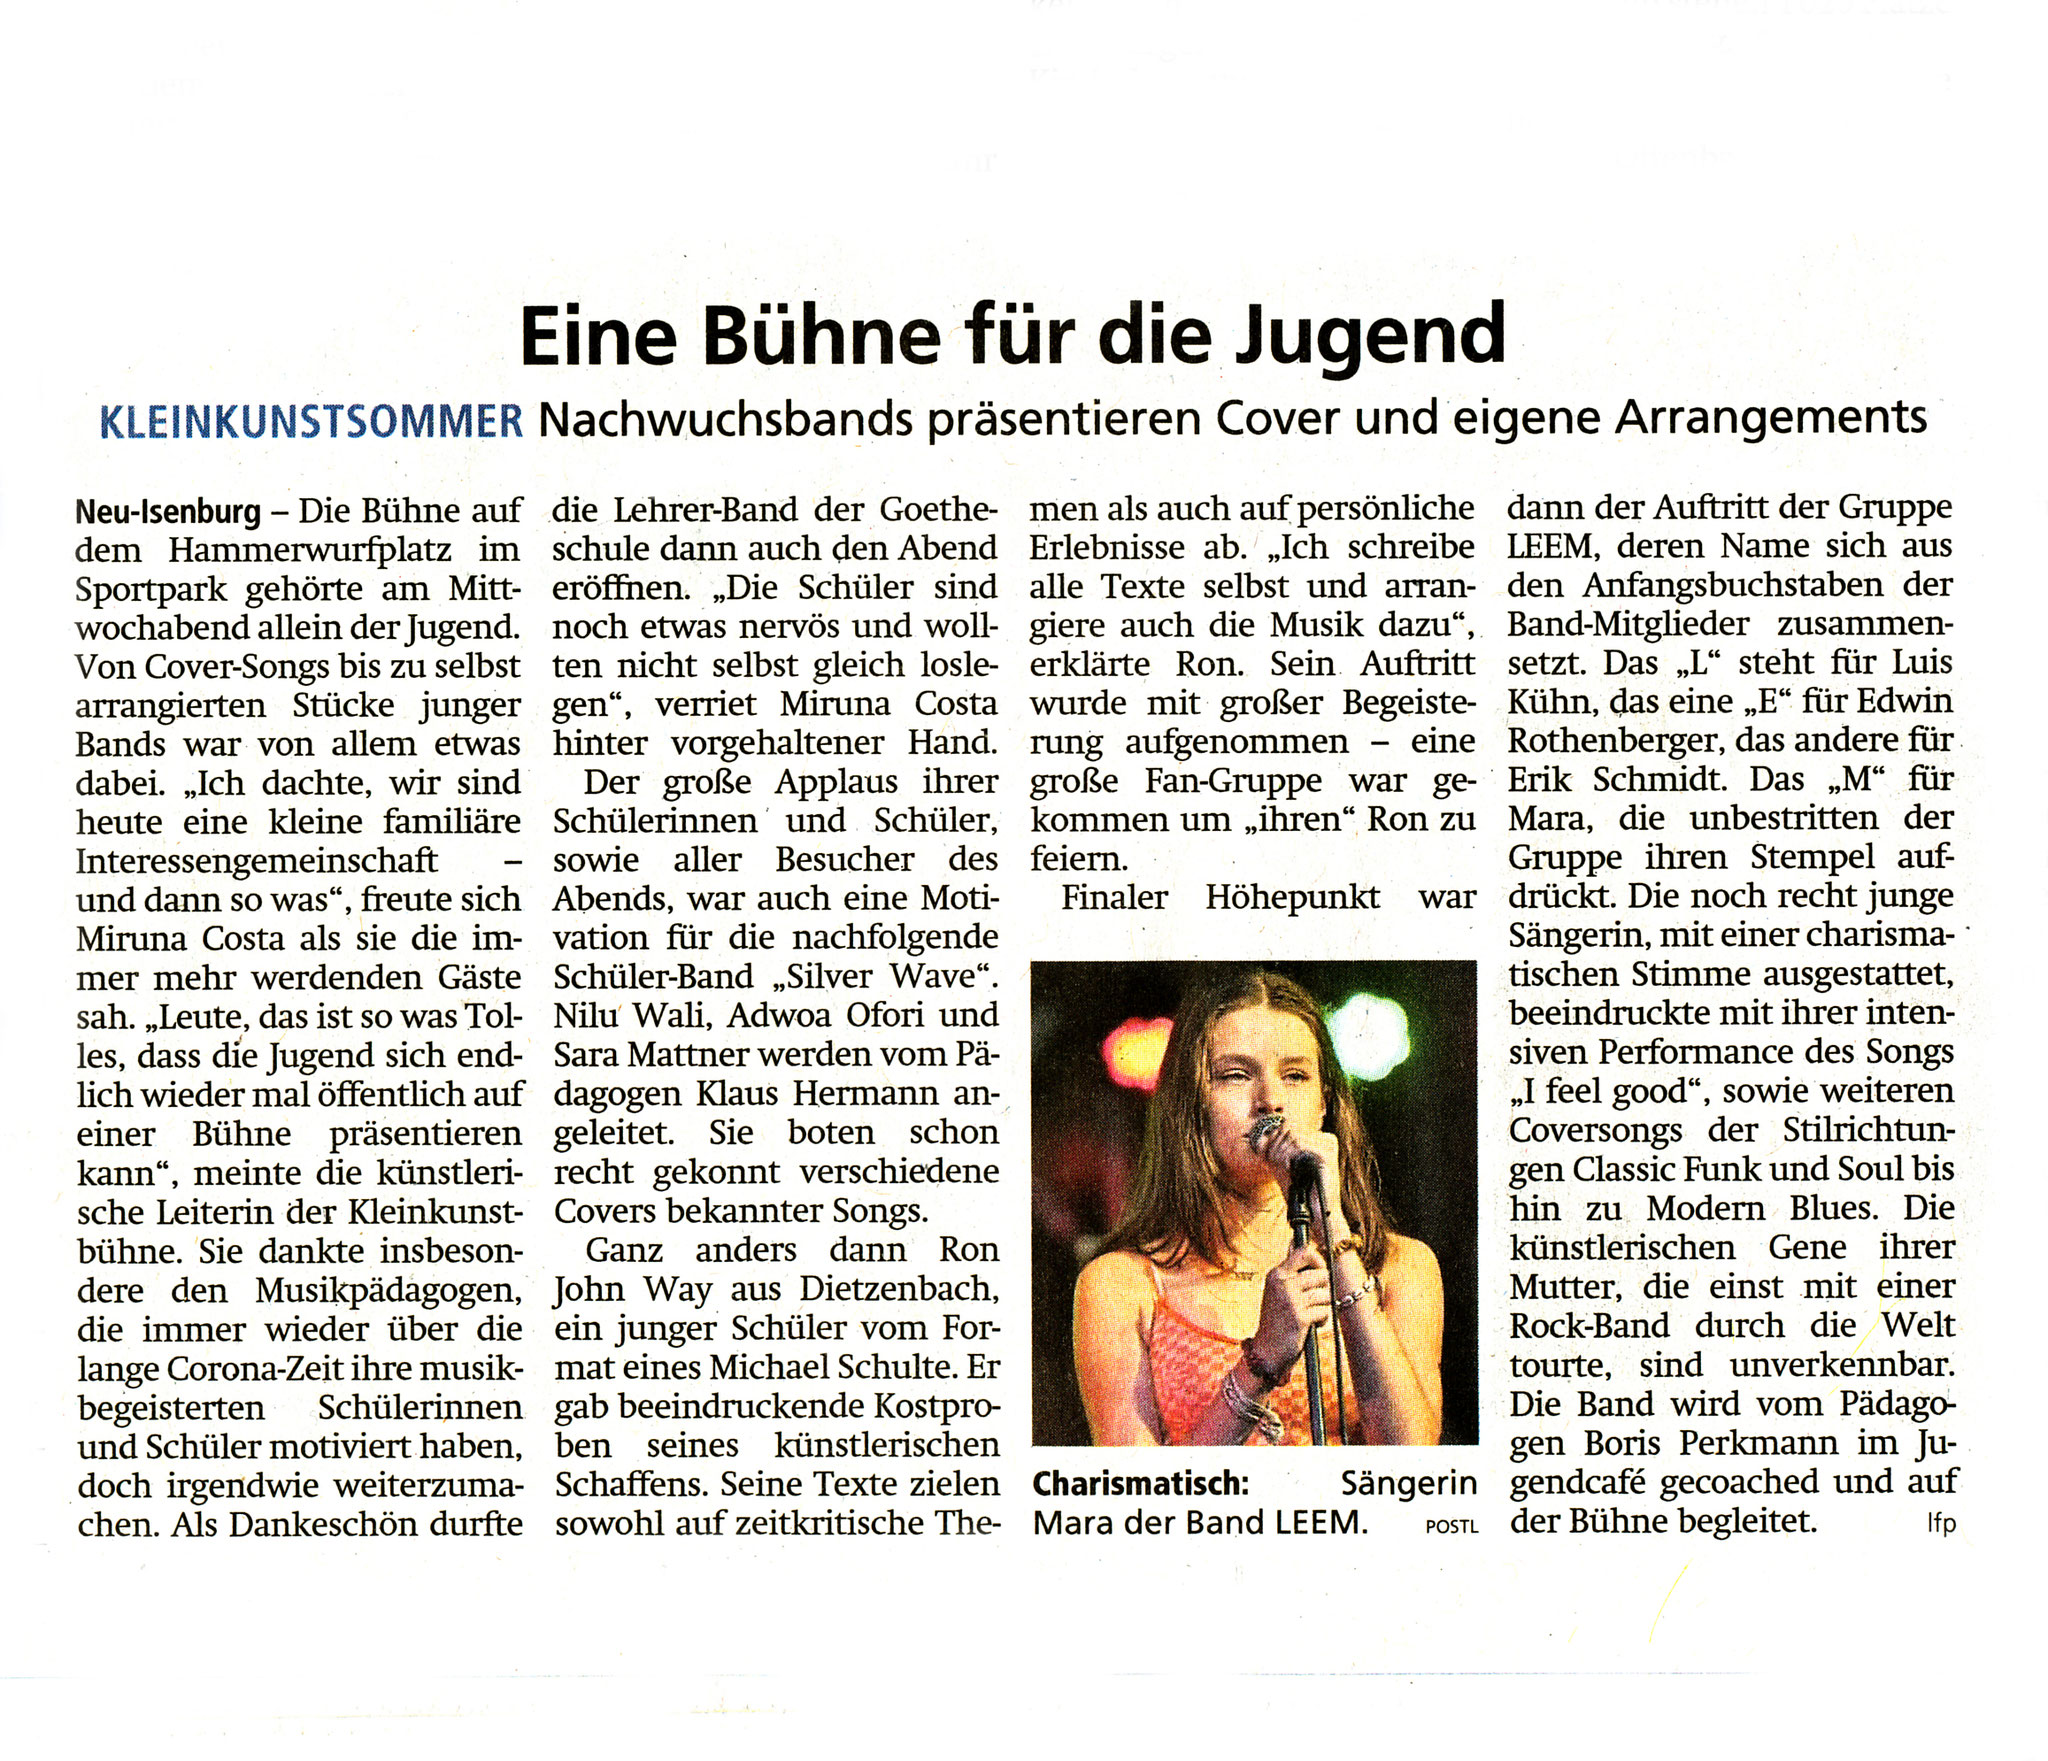 Offenbach Post, 24.09.2021